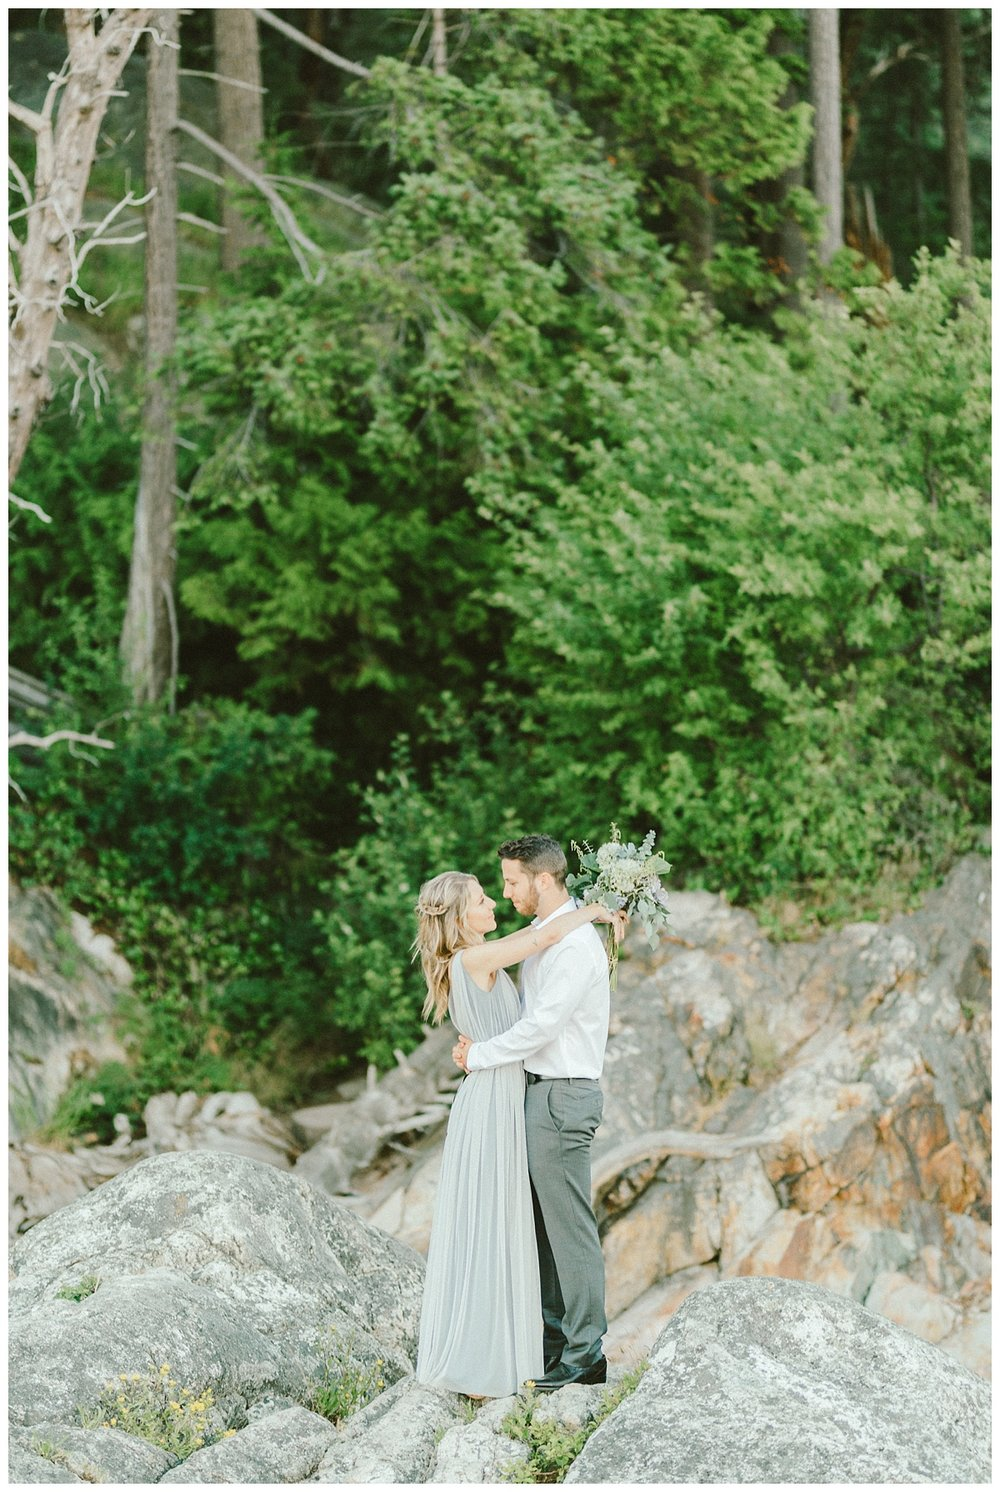 Hong Kong Fine Art Wedding Prewedding Photographer Mattie C. 00038.jpg